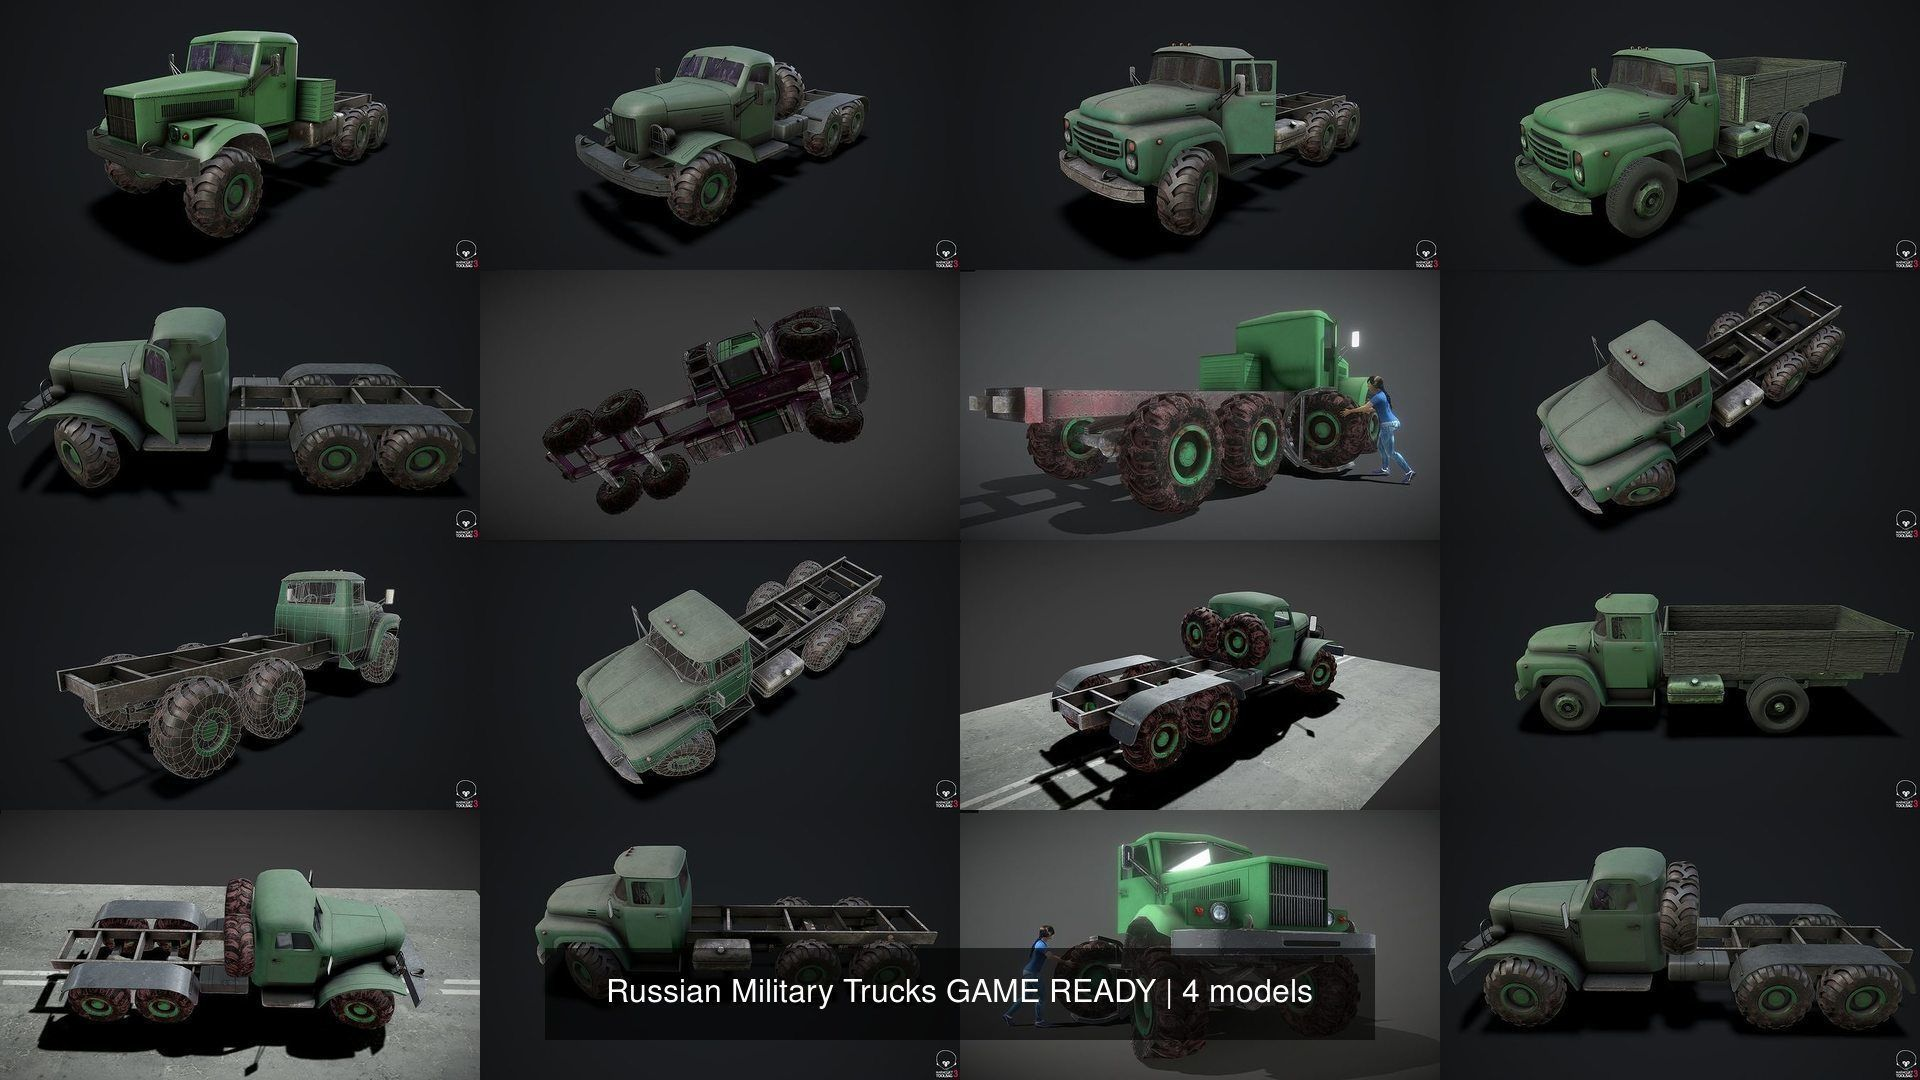 Russian Military Trucks GAME READY